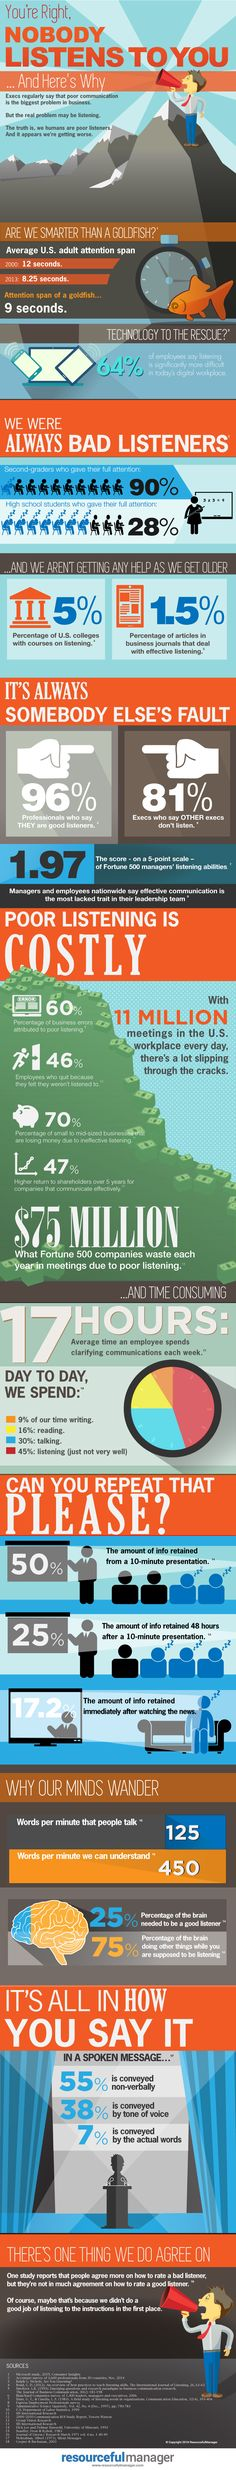 You're Right. Nobody Listens To You [Infographic] 17 hours spent for clarification? WOW!